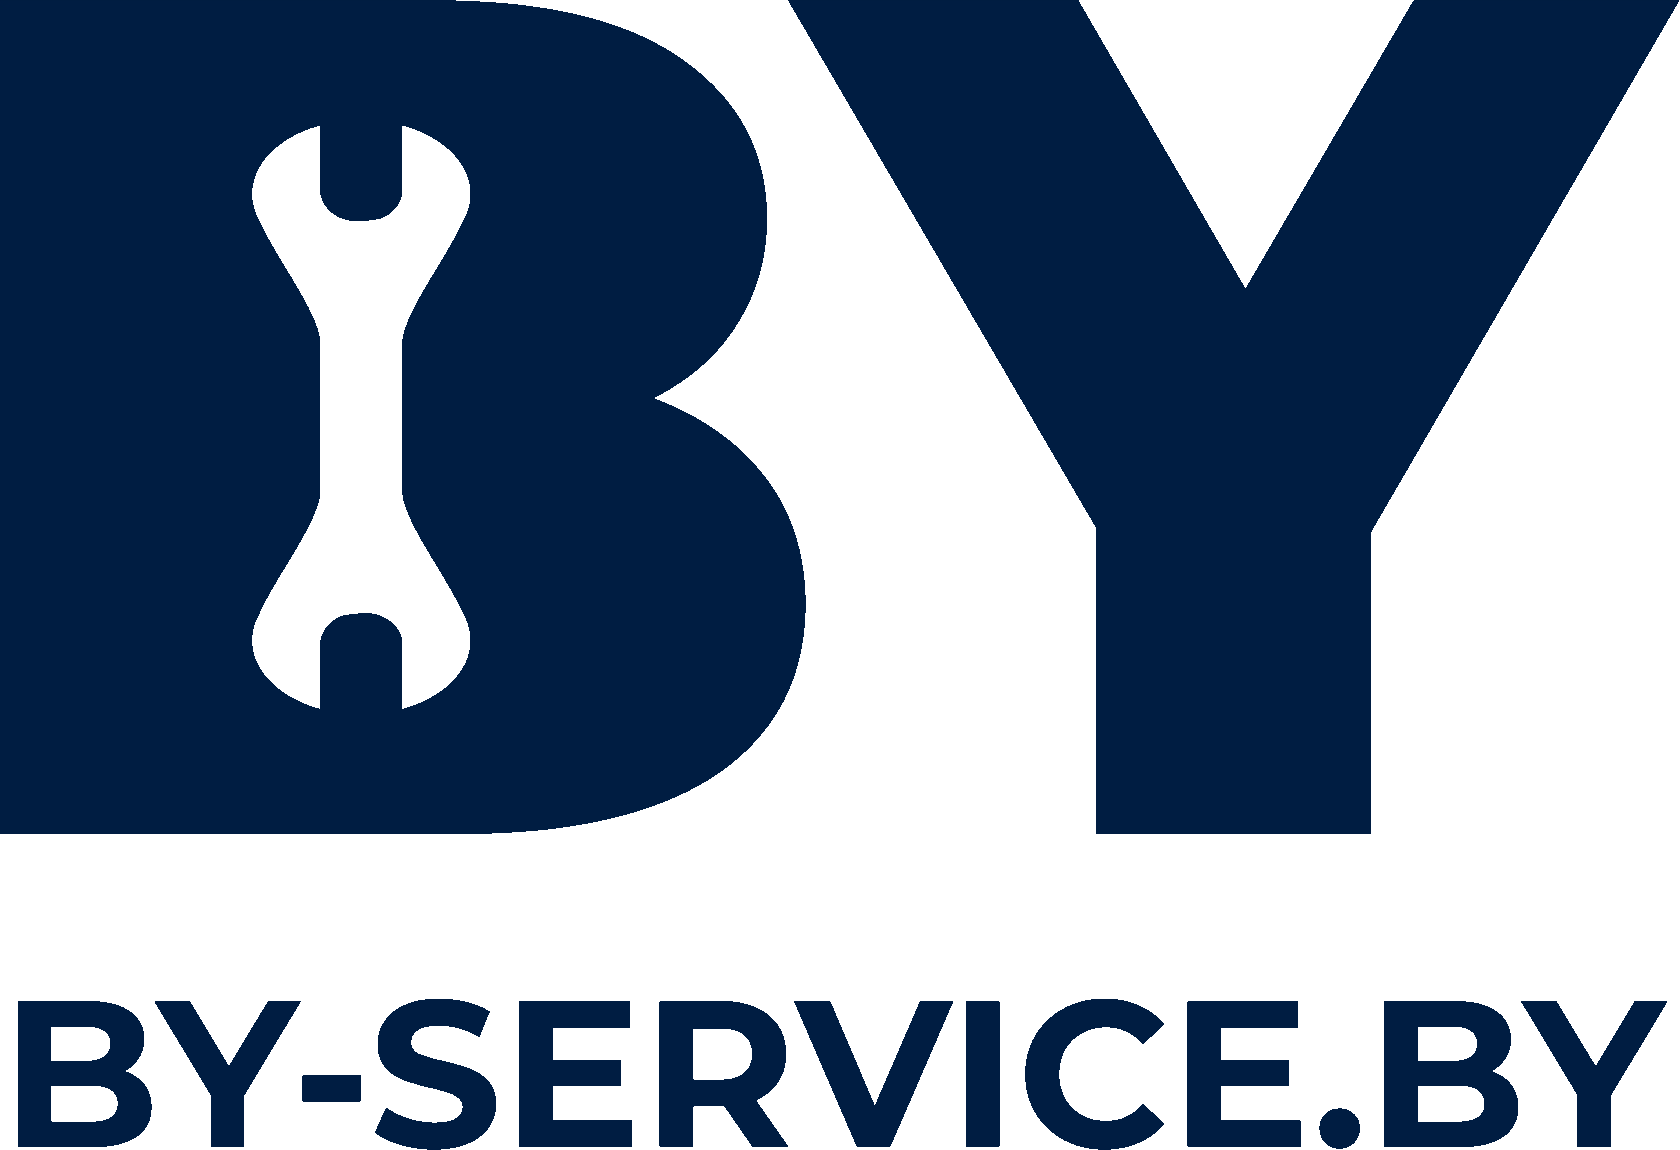 BY-SERVICE.BY